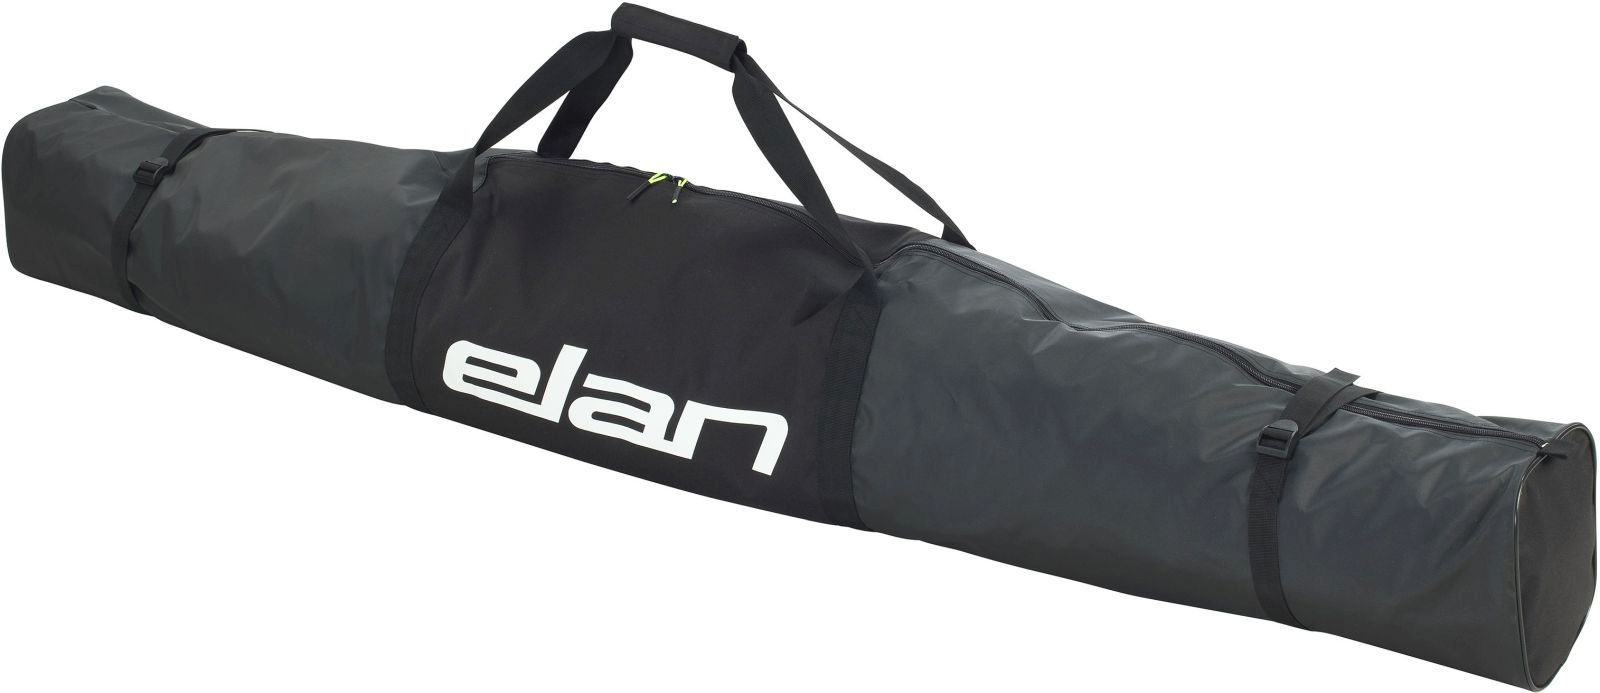 Elan 1 Pair Ski Bag uni